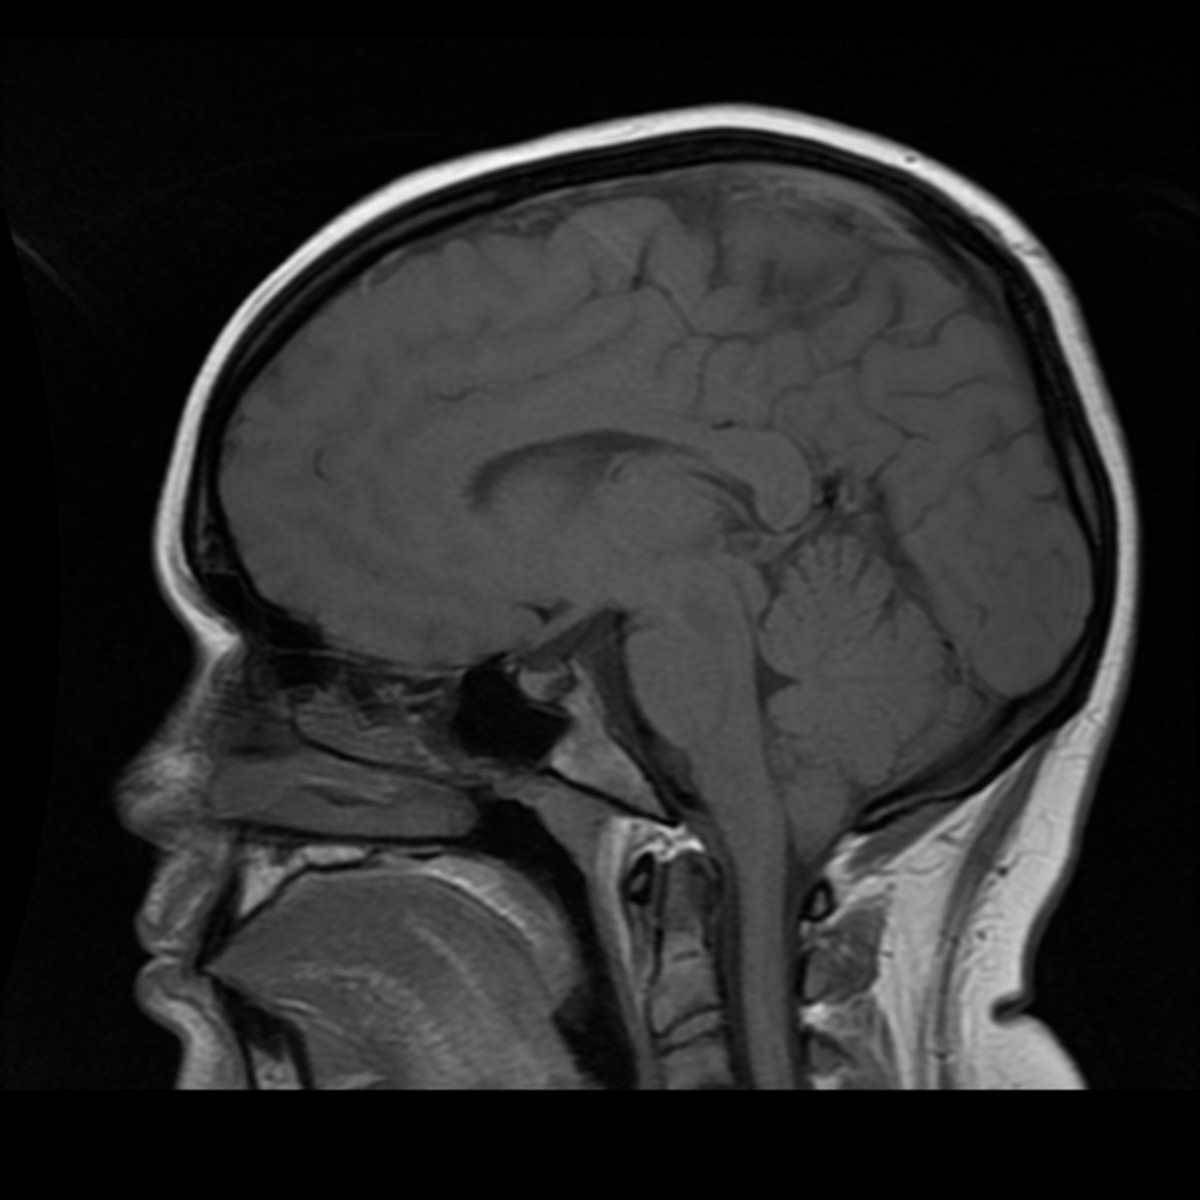 My most recent MRI